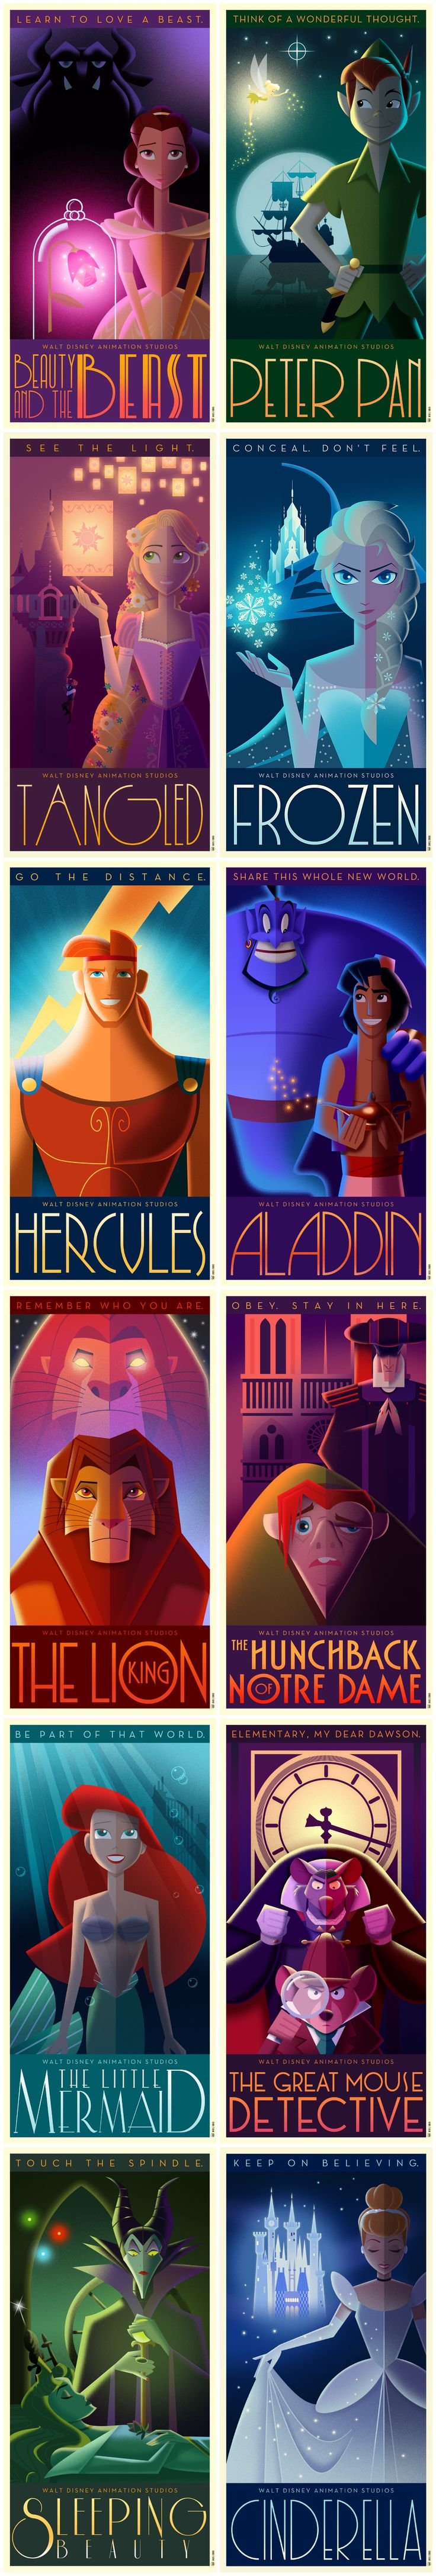 179 best disney movie posters reimagined images on